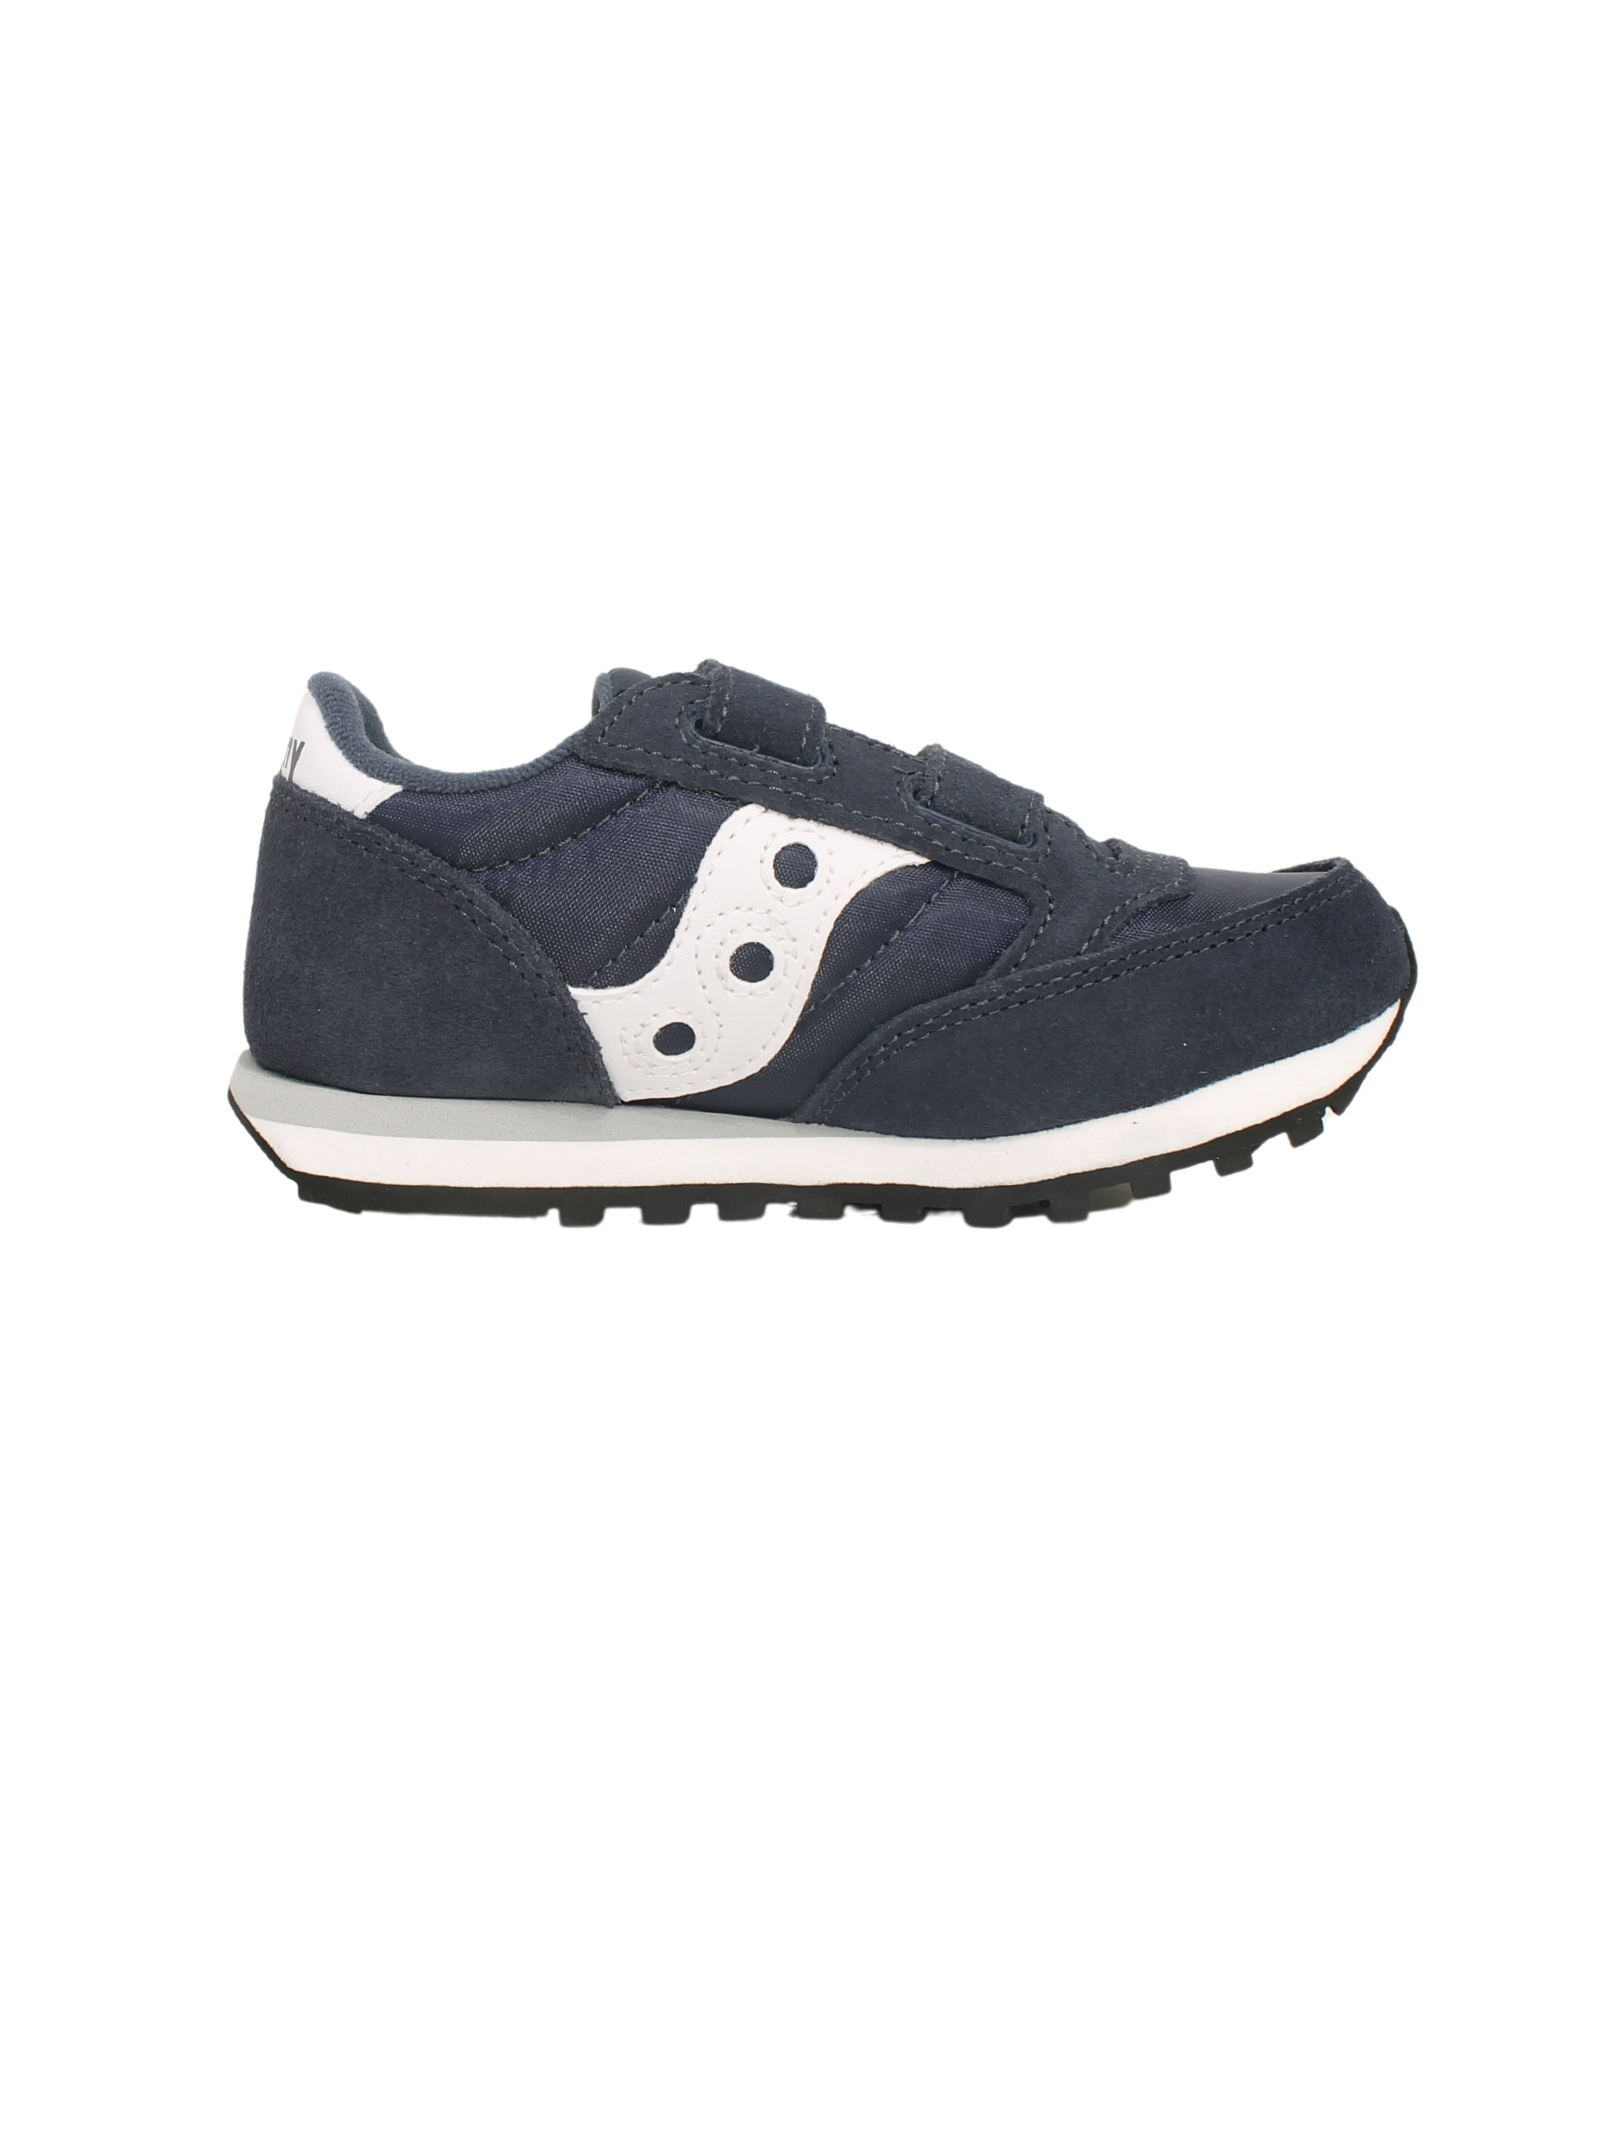 Low Sport Sneakers Child SAUCONY KIDS | Sneakers | SK265140NAVY/WHITE